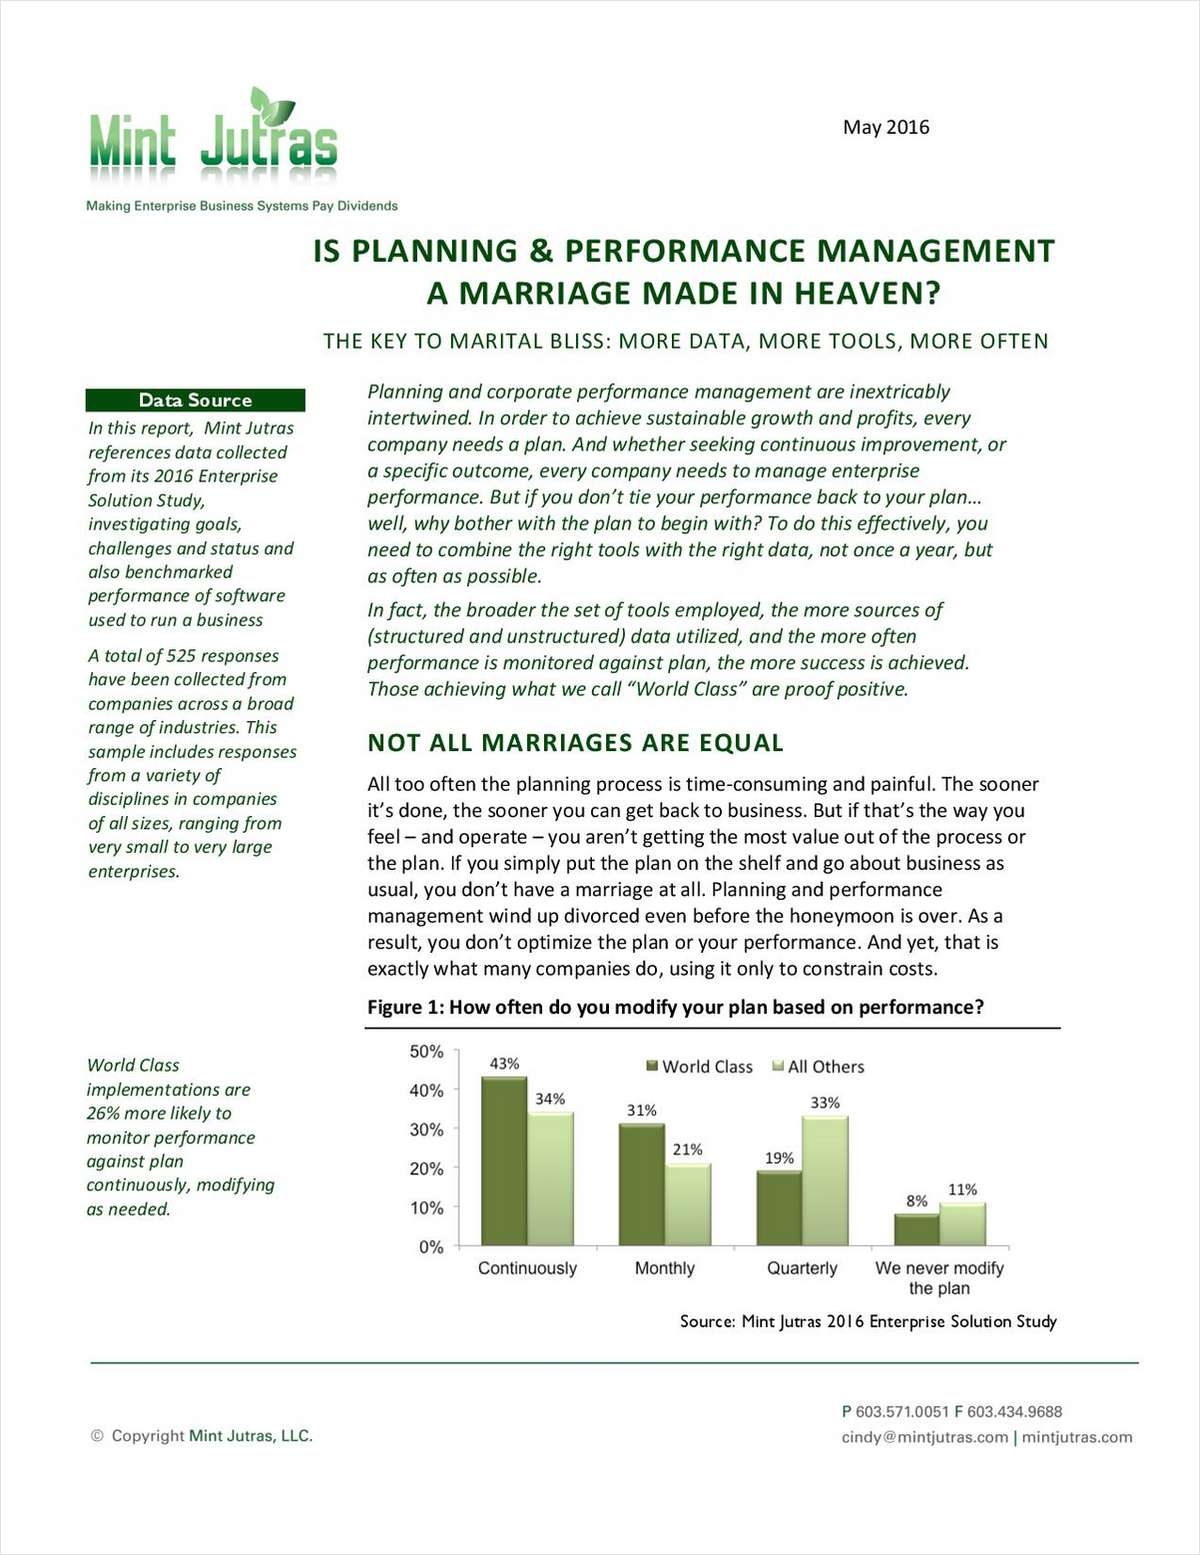 The Key To Marital Bliss: Planning & Performance Management?